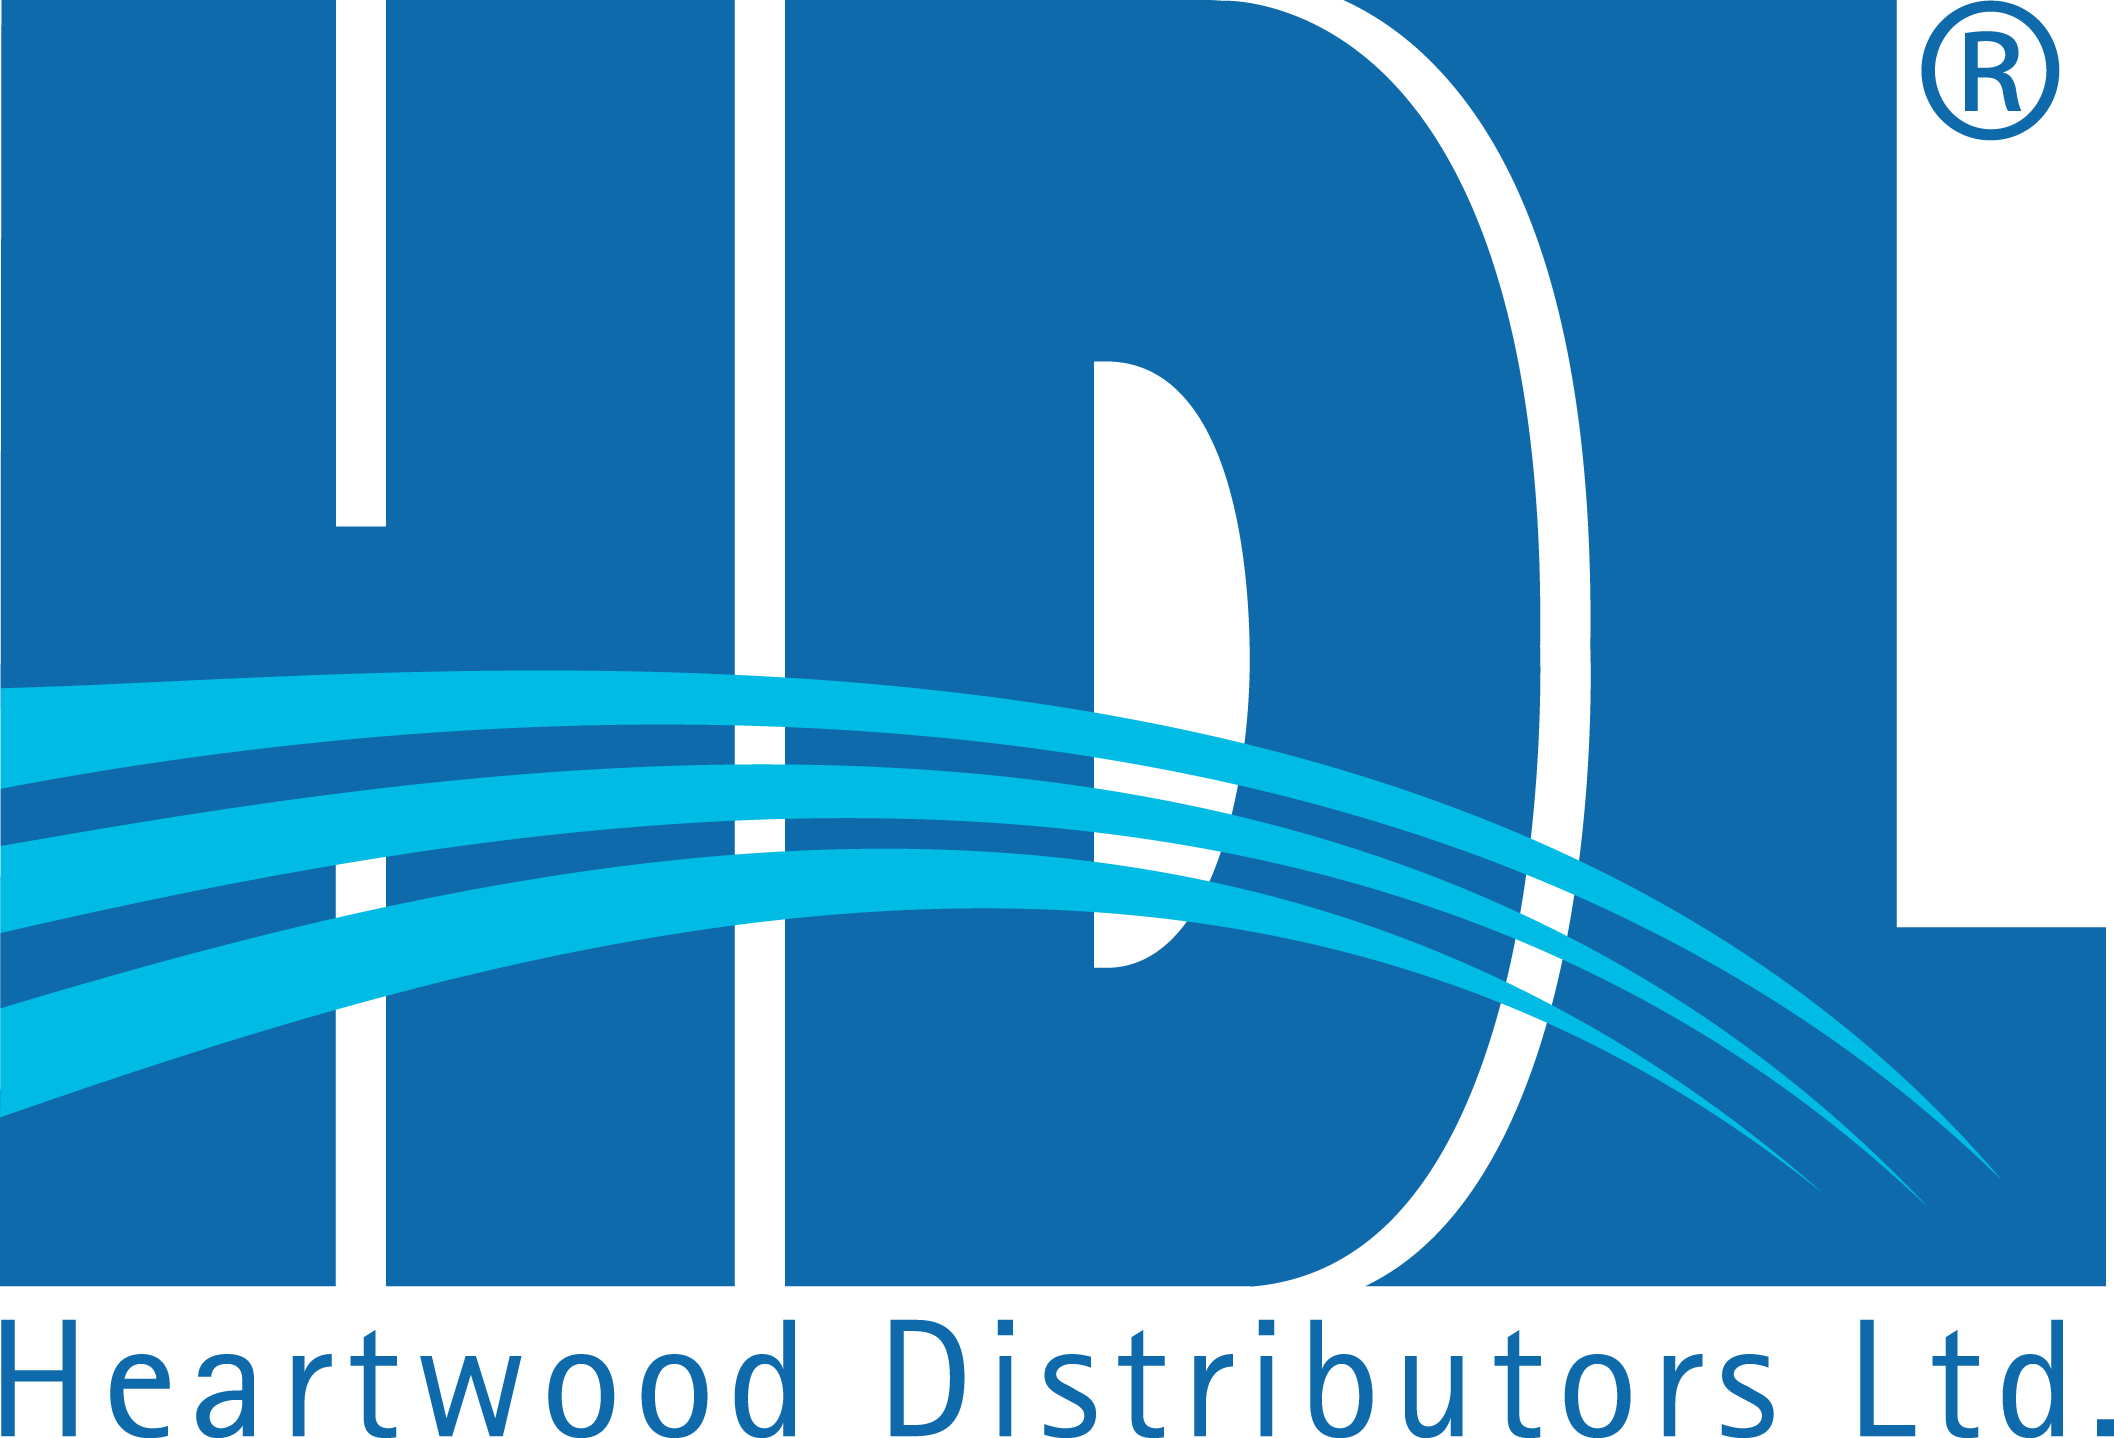 Heartwood Distributors Ltd